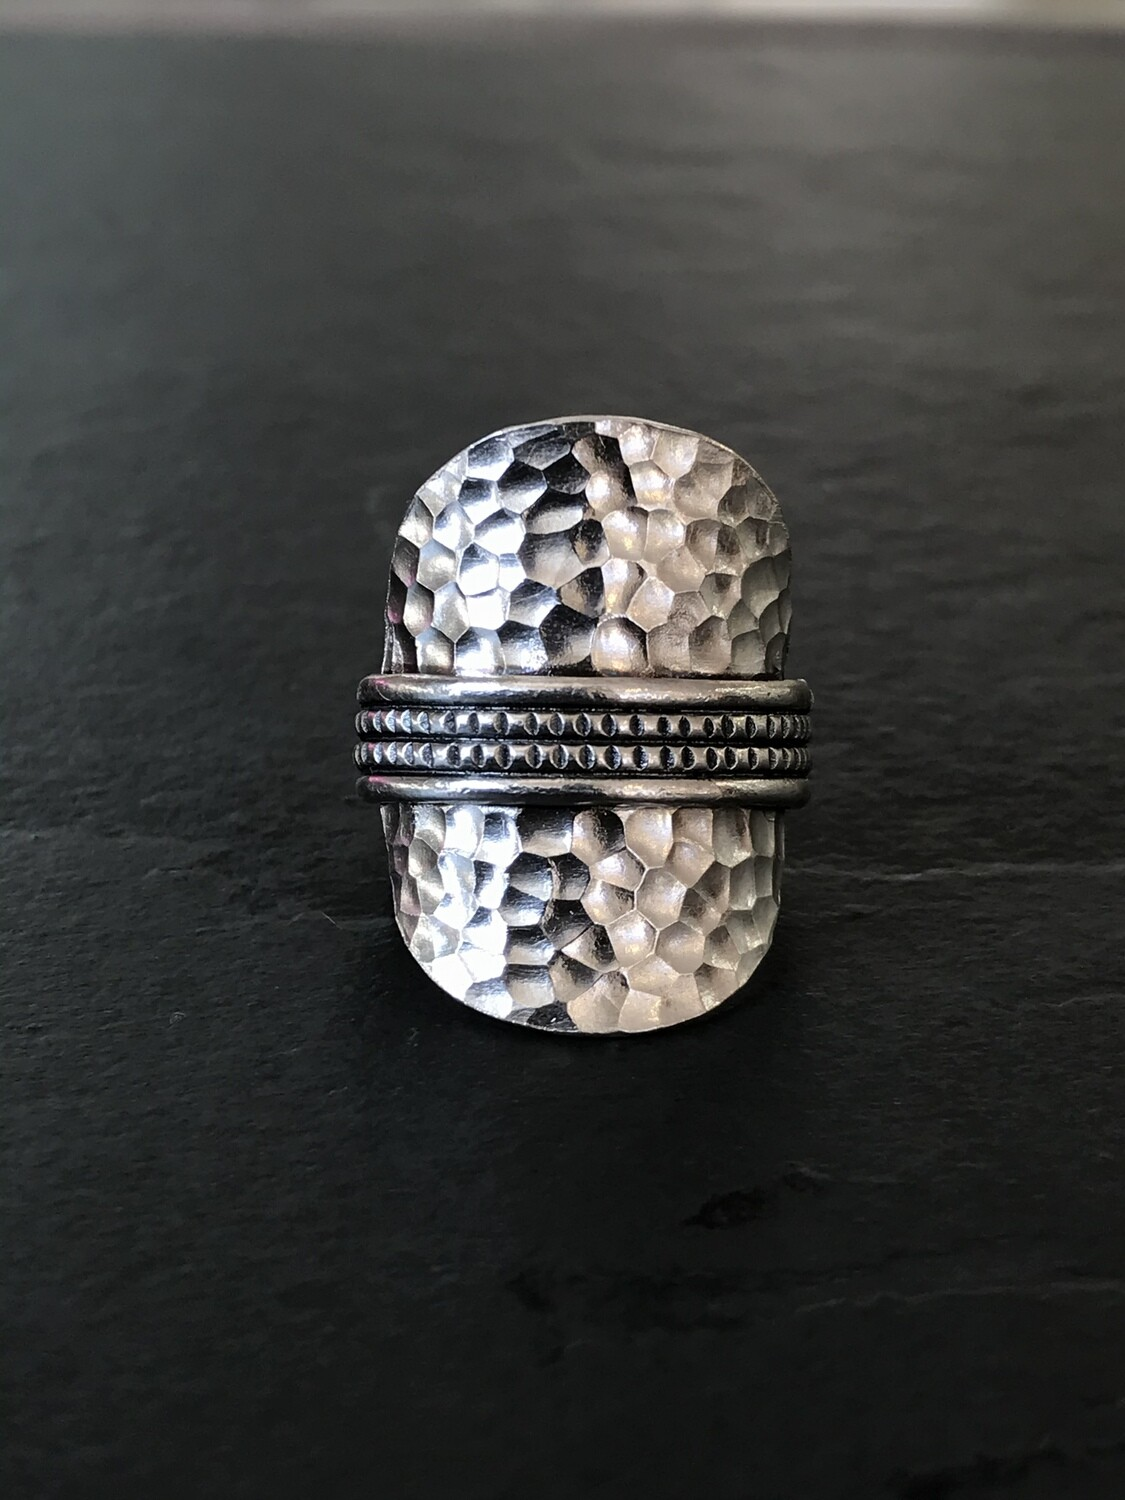 Hill Tribe Silver Hatched Oval Ring - RAN9-2